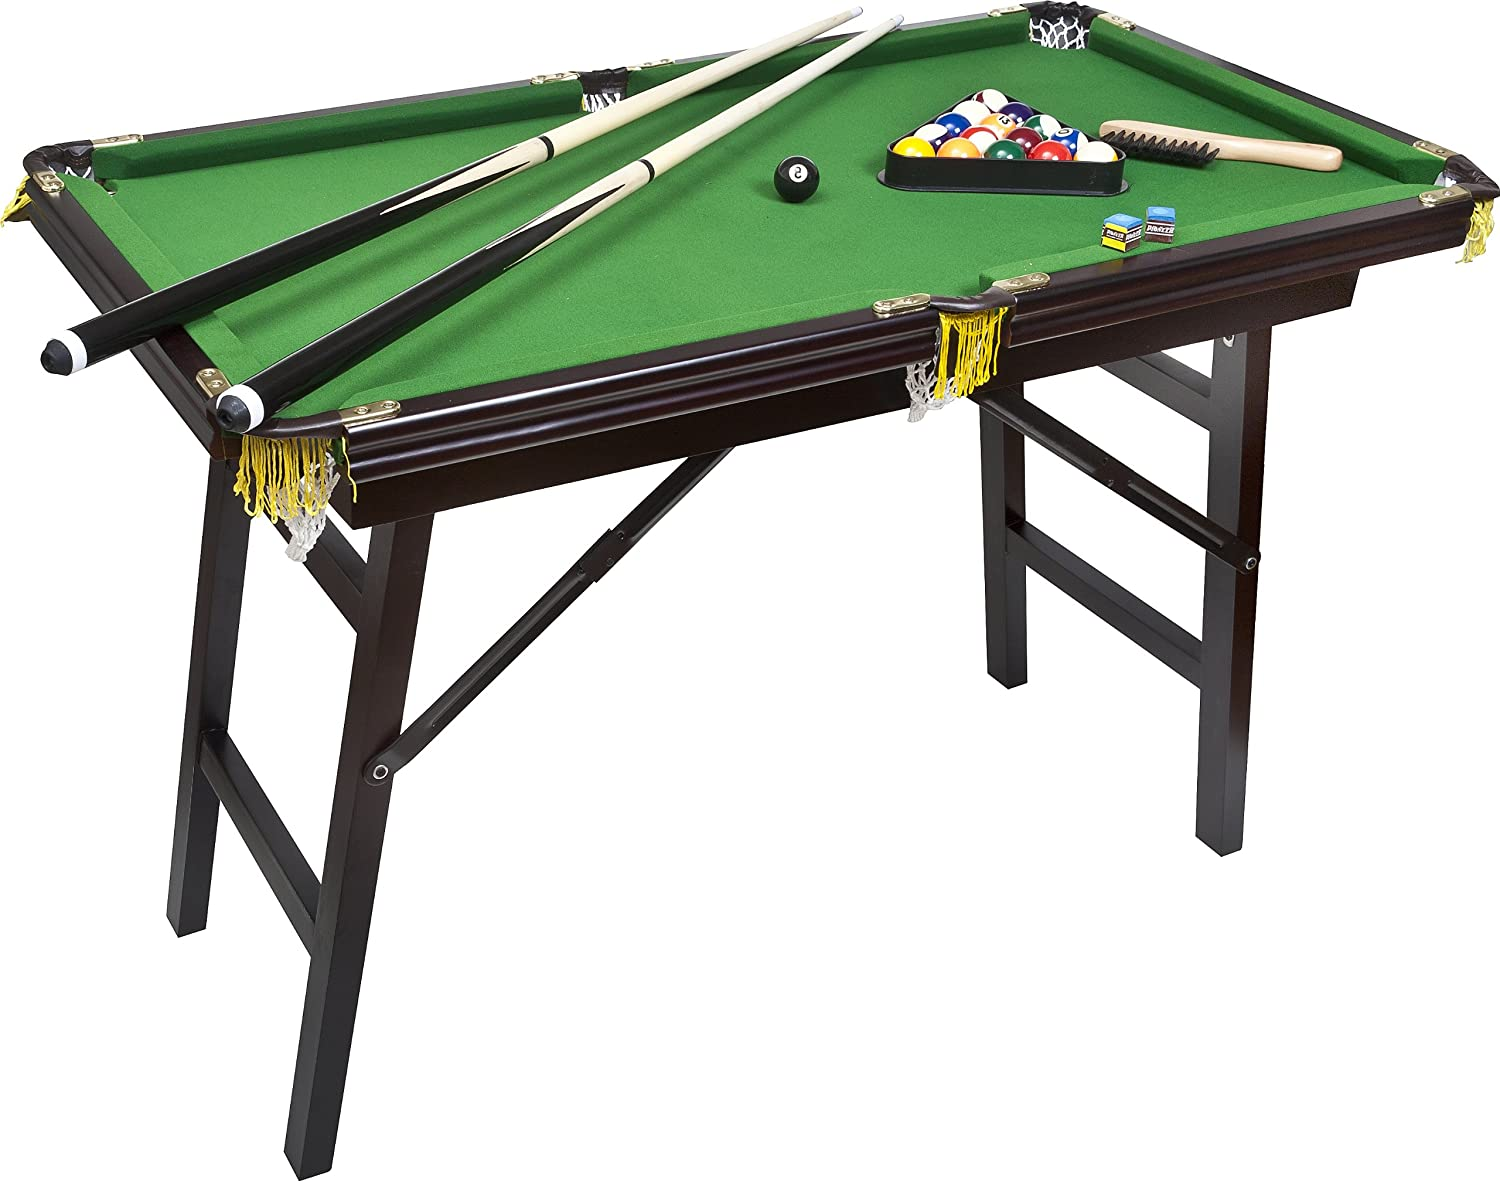 Folding legs pool table for sale - Amazon Com Bello Games New York Deluxe Folding Pool Table Extra Large 44 Sports Outdoors